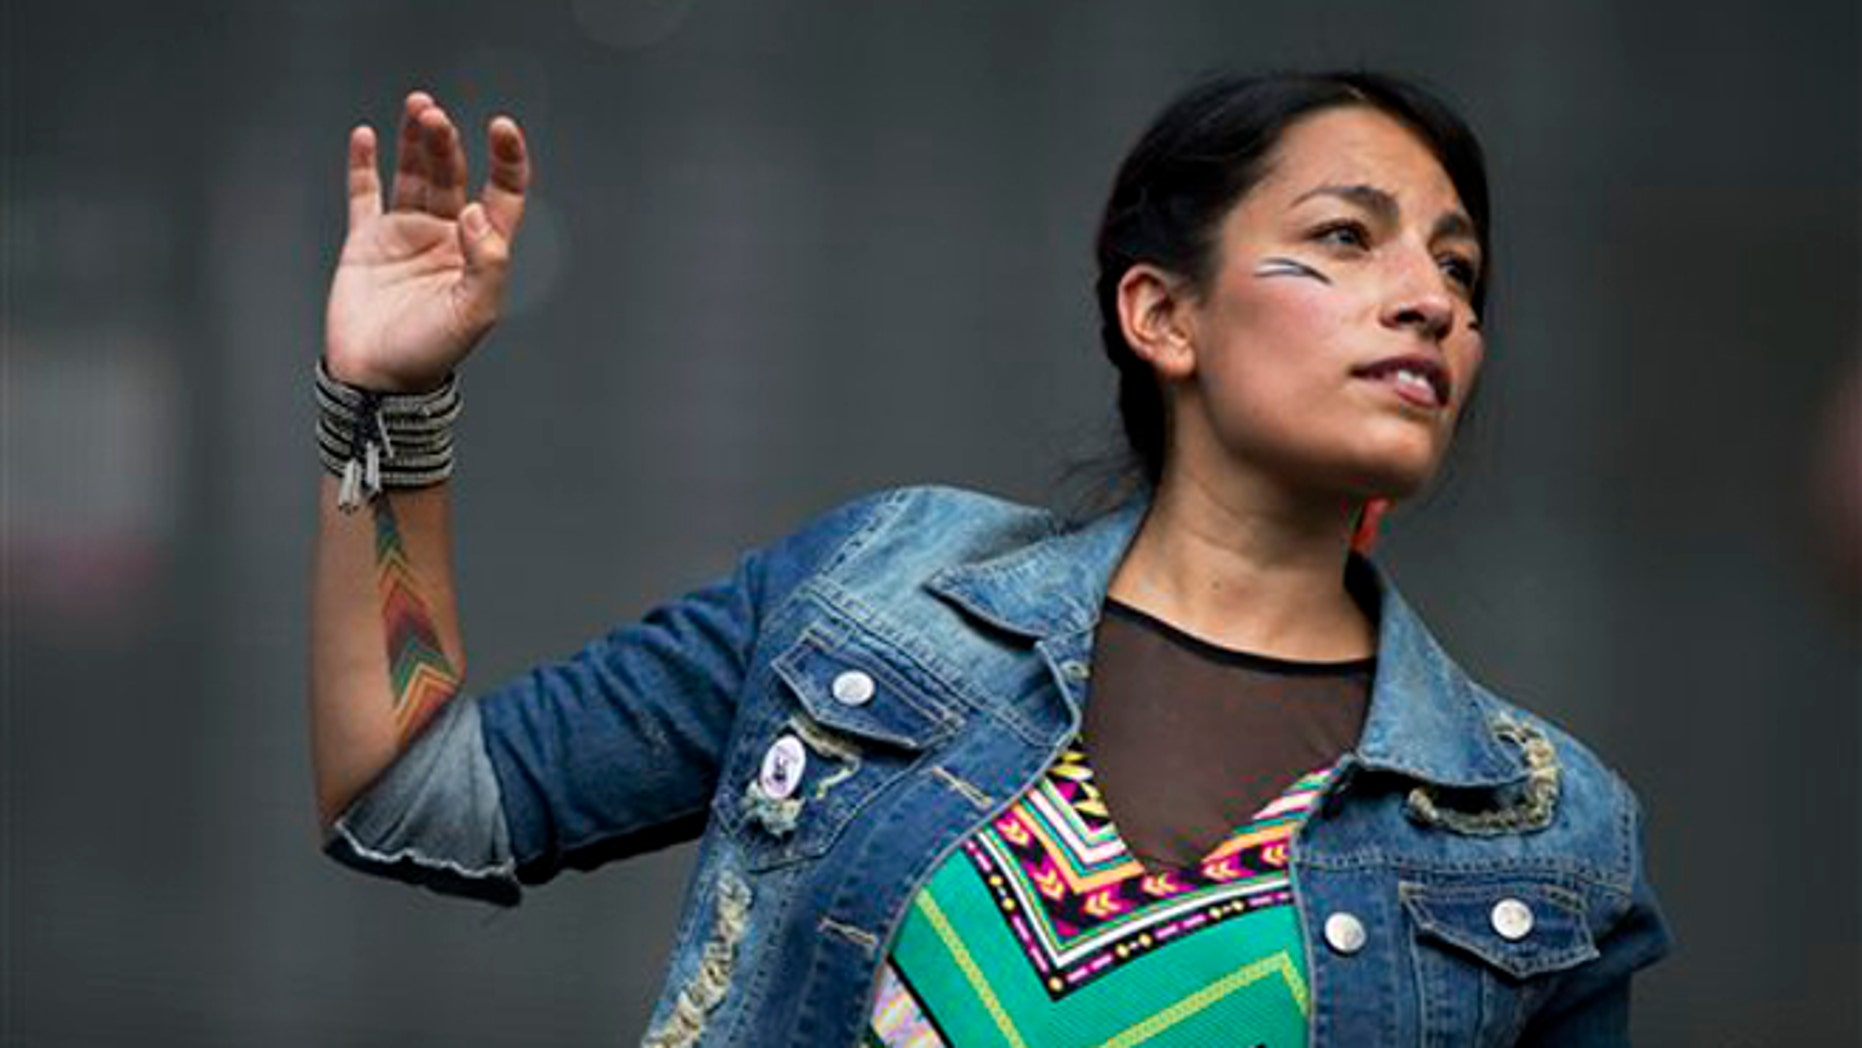 Ana Tijoux at the Vive Latino music festival in Mexico City, on March 28, 2014.